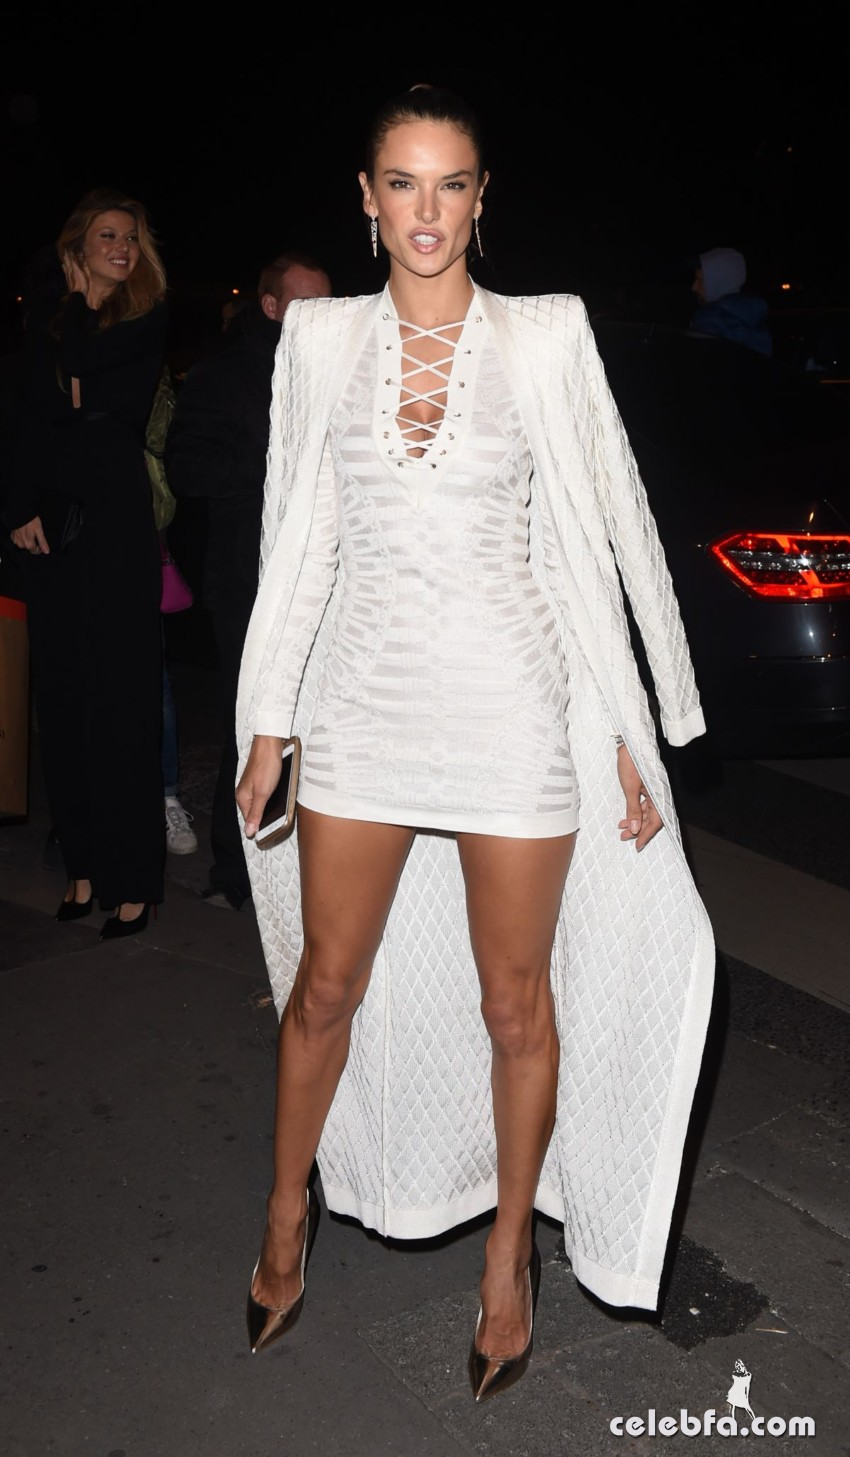 alessandra-ambrosio-at-balmain-fashion-show-after-party-in-paris (3)